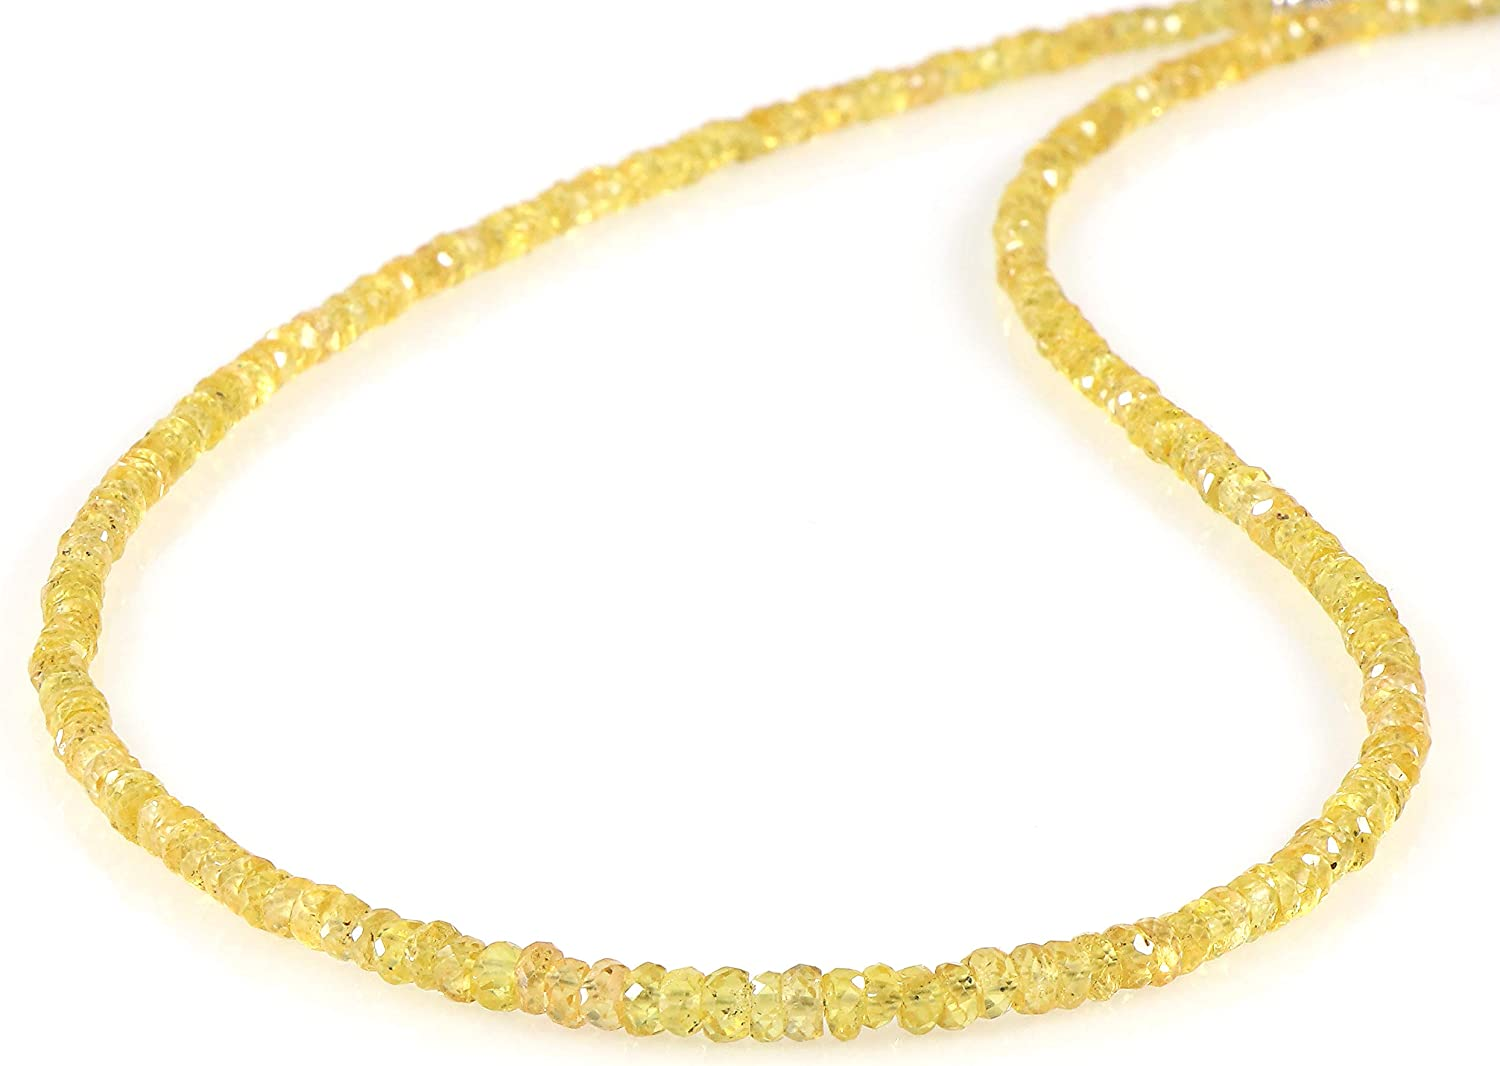 Necklaces for Women - Natural Gemstone Birthstone Healing Selling Max 45% OFF and selling Beaded